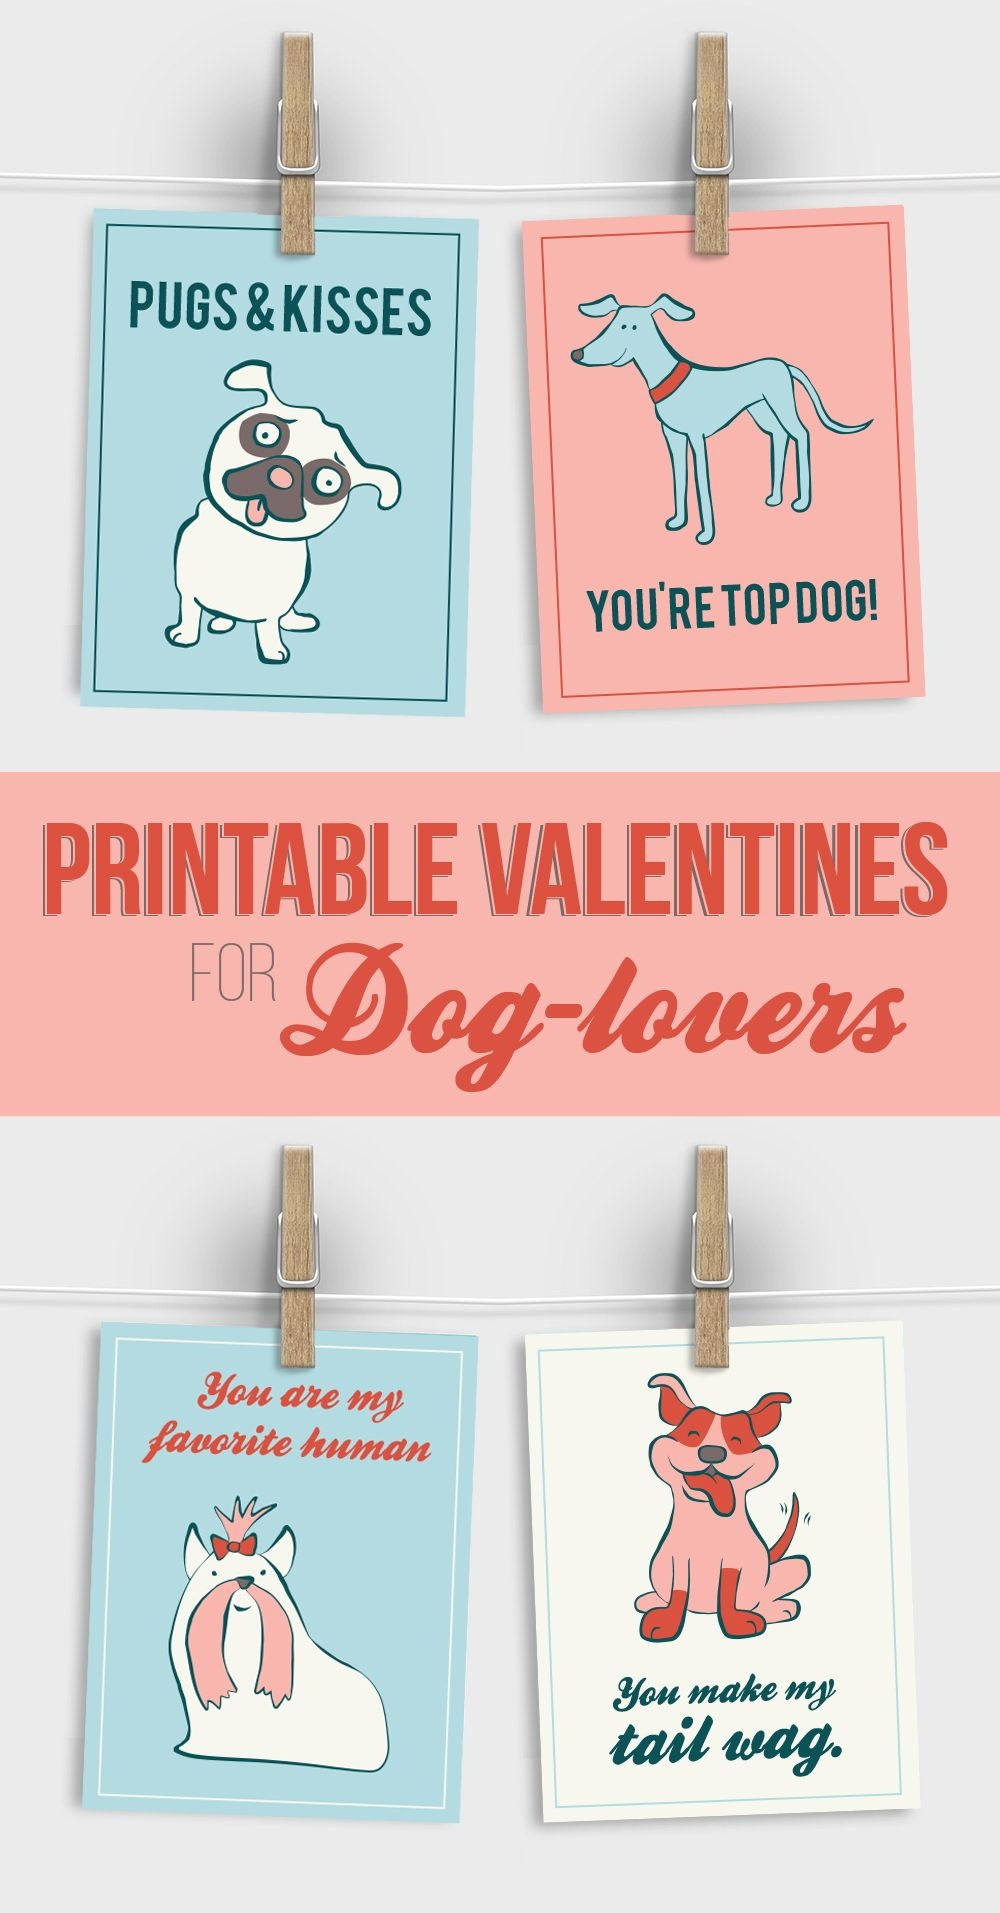 Free Printable Valentines For Dog Lovers | Must Love Dogs | Dogs - Free Printable Dog Valentines Day Cards